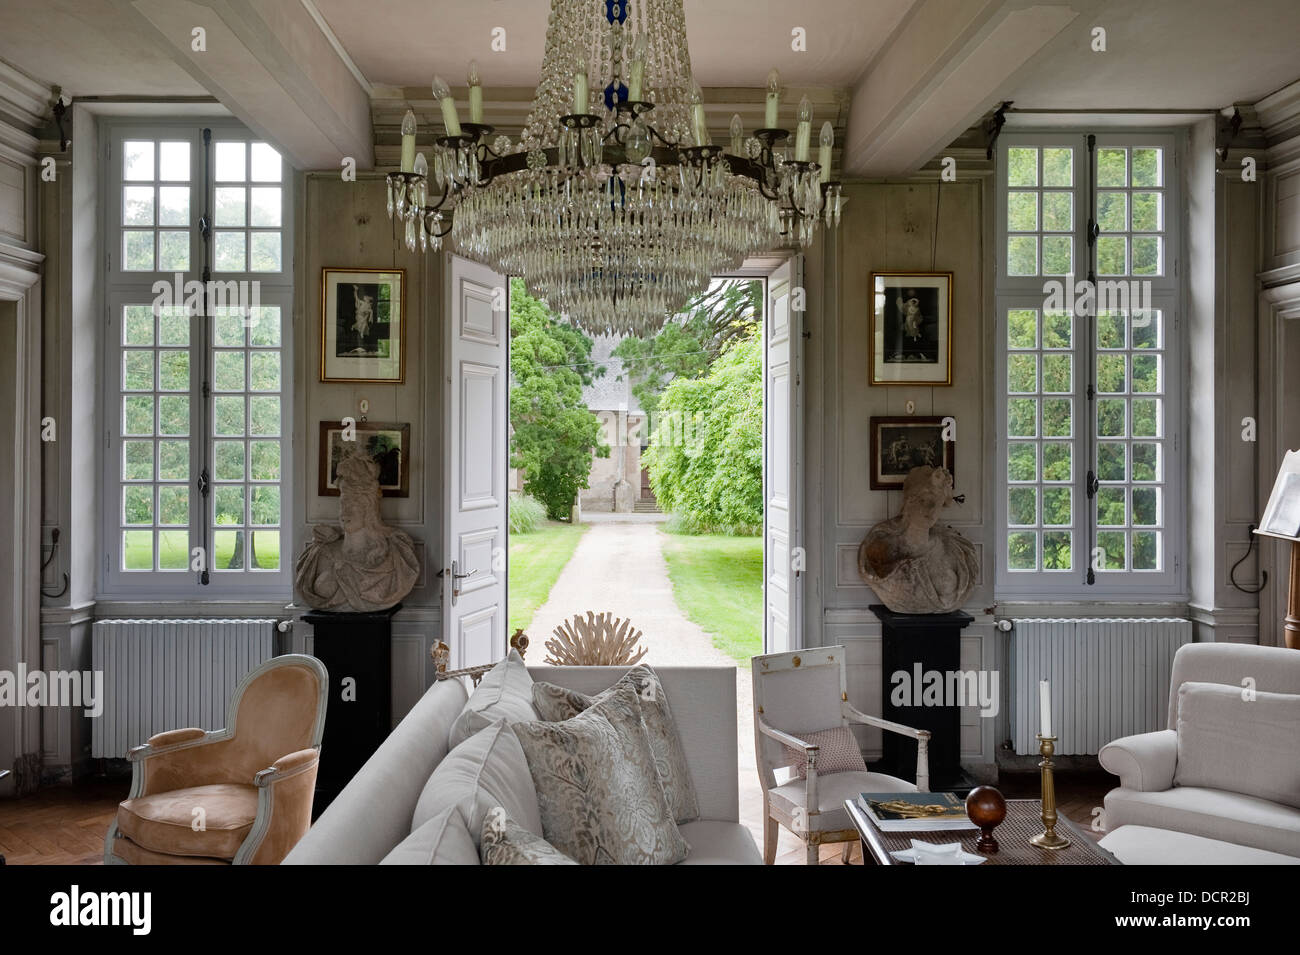 18C chandelier in sitting room furnished with French antiques, stone busts and with french doors leading out to - Stock Image